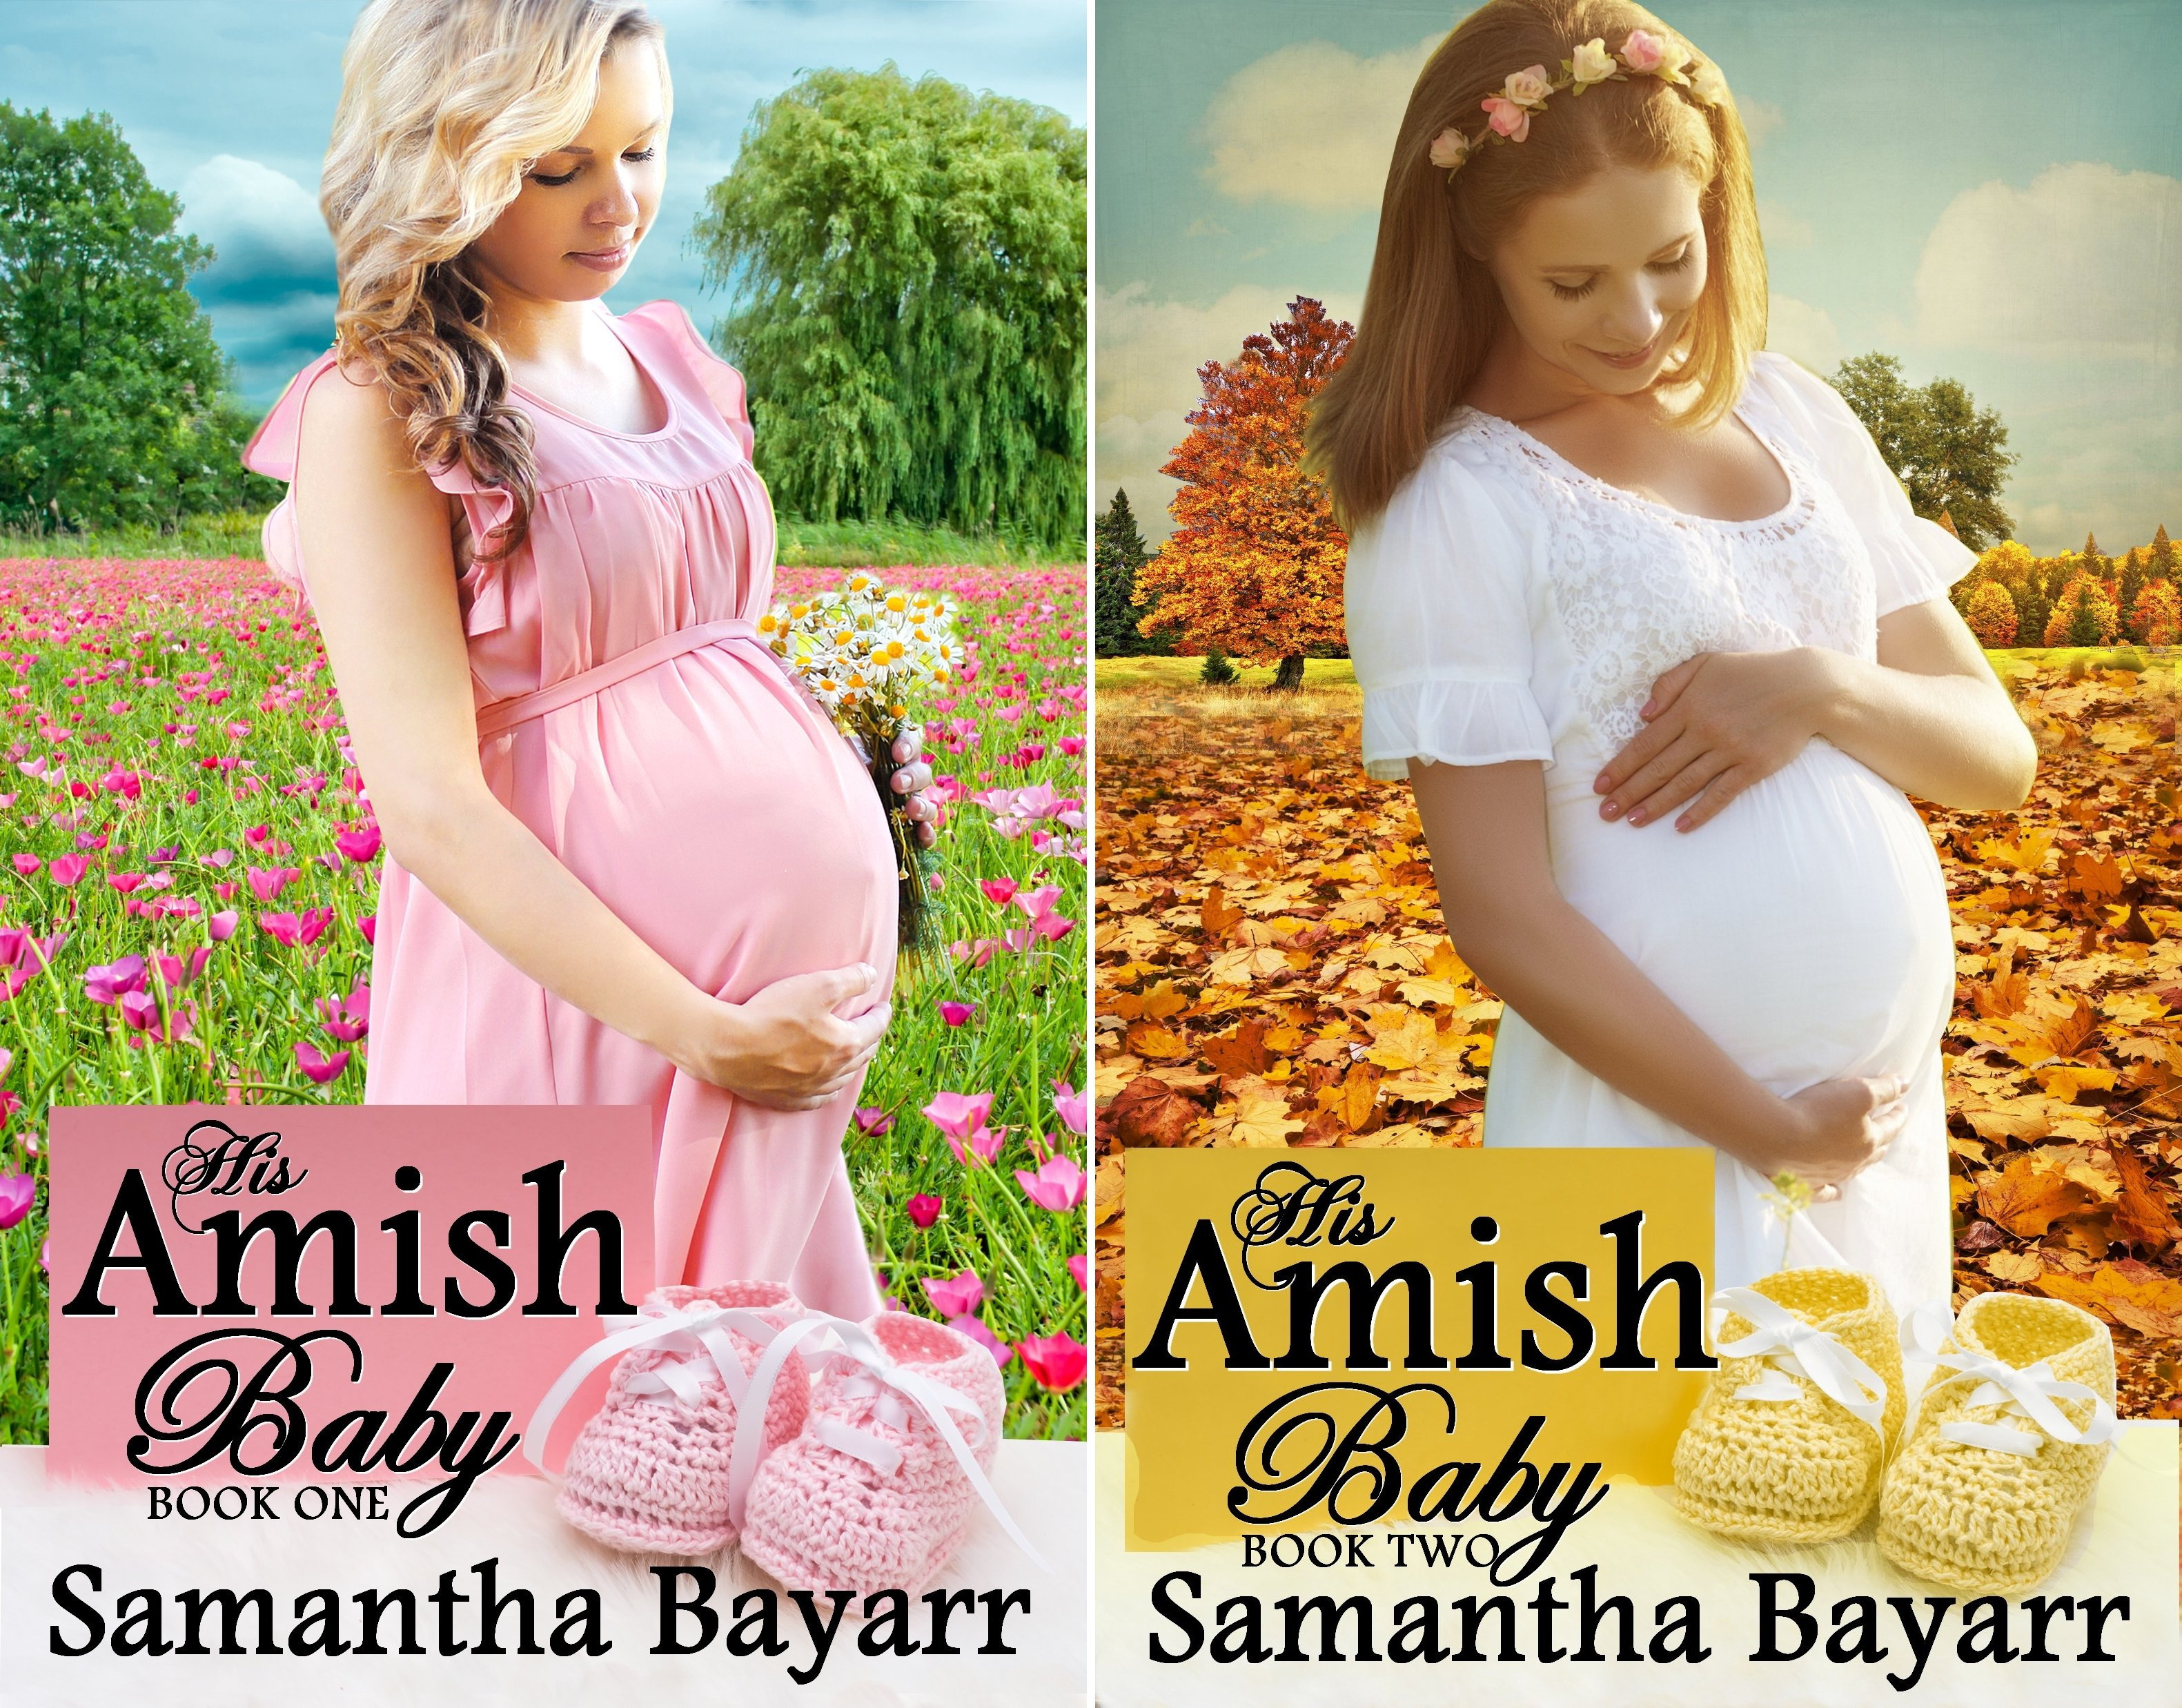 His Amish Baby (2 Book Series)